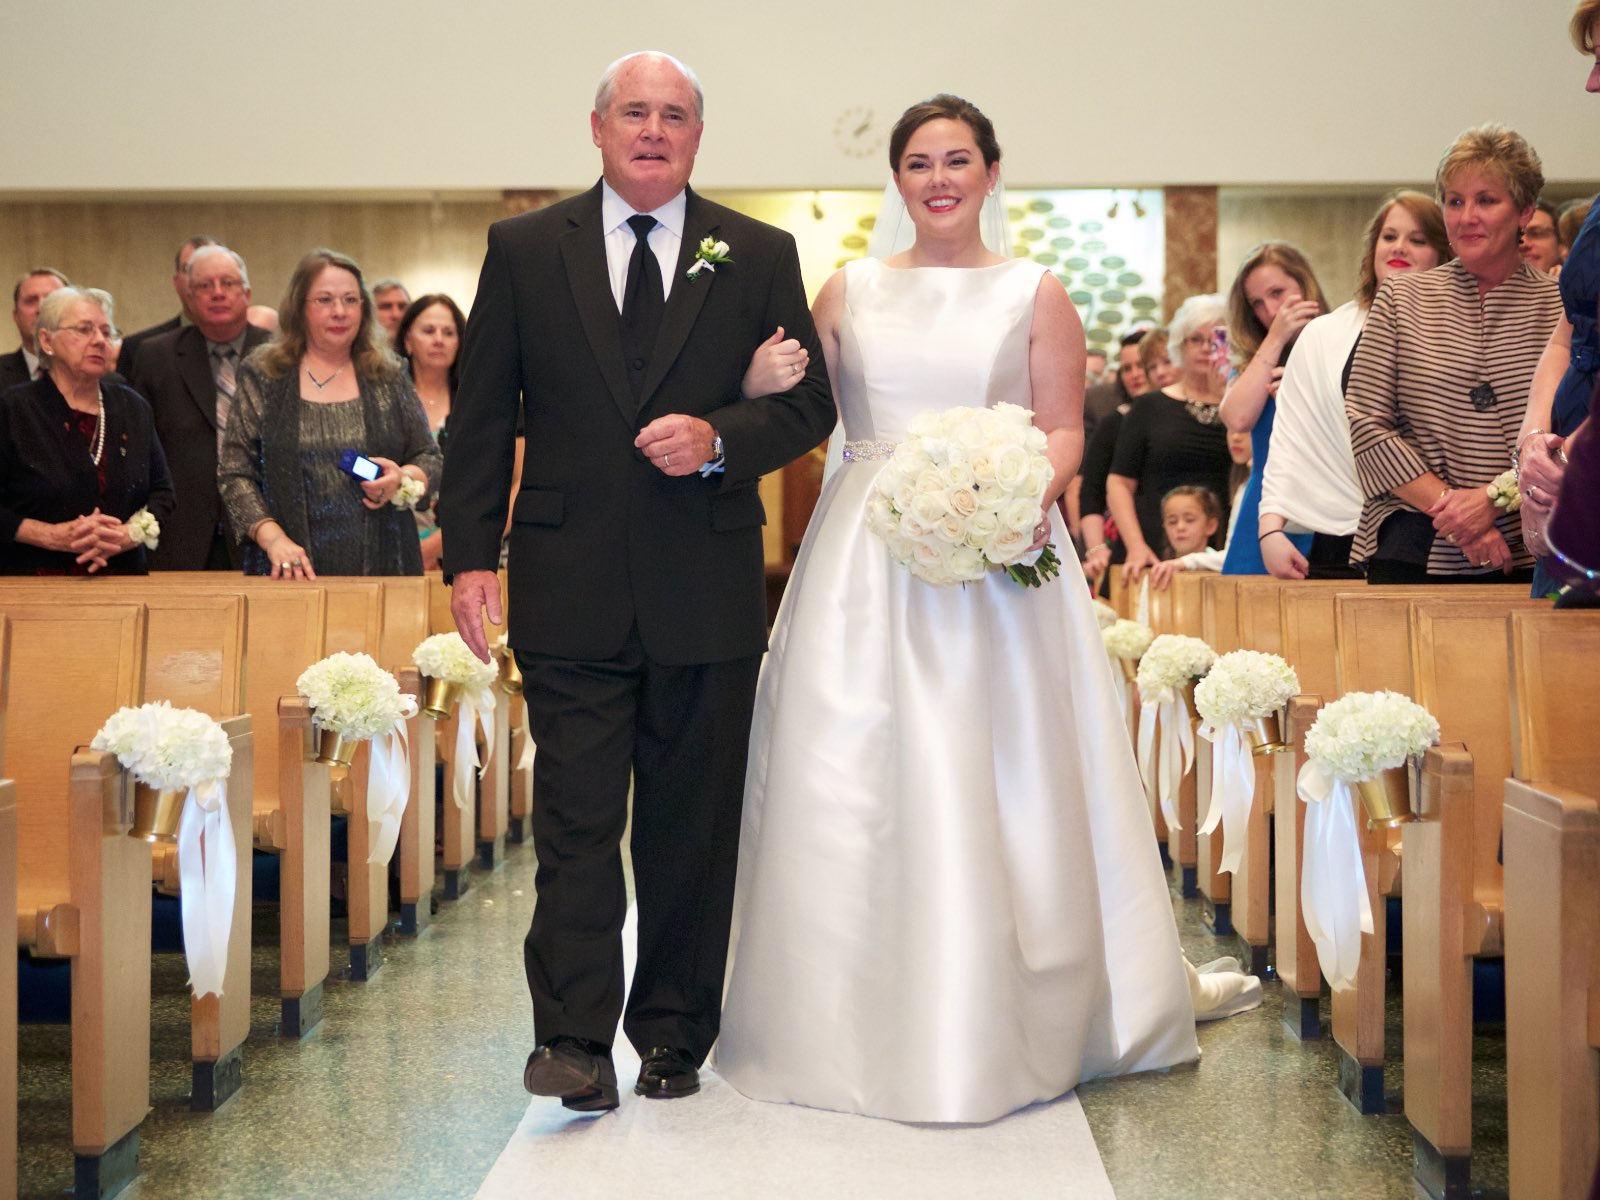 Elizabeth walks down the aisle with her father, ceremony at St. Rita of Cascia Shrine Chapel in Chicago. Wedding photography by Steve & Tiffany Warmowski